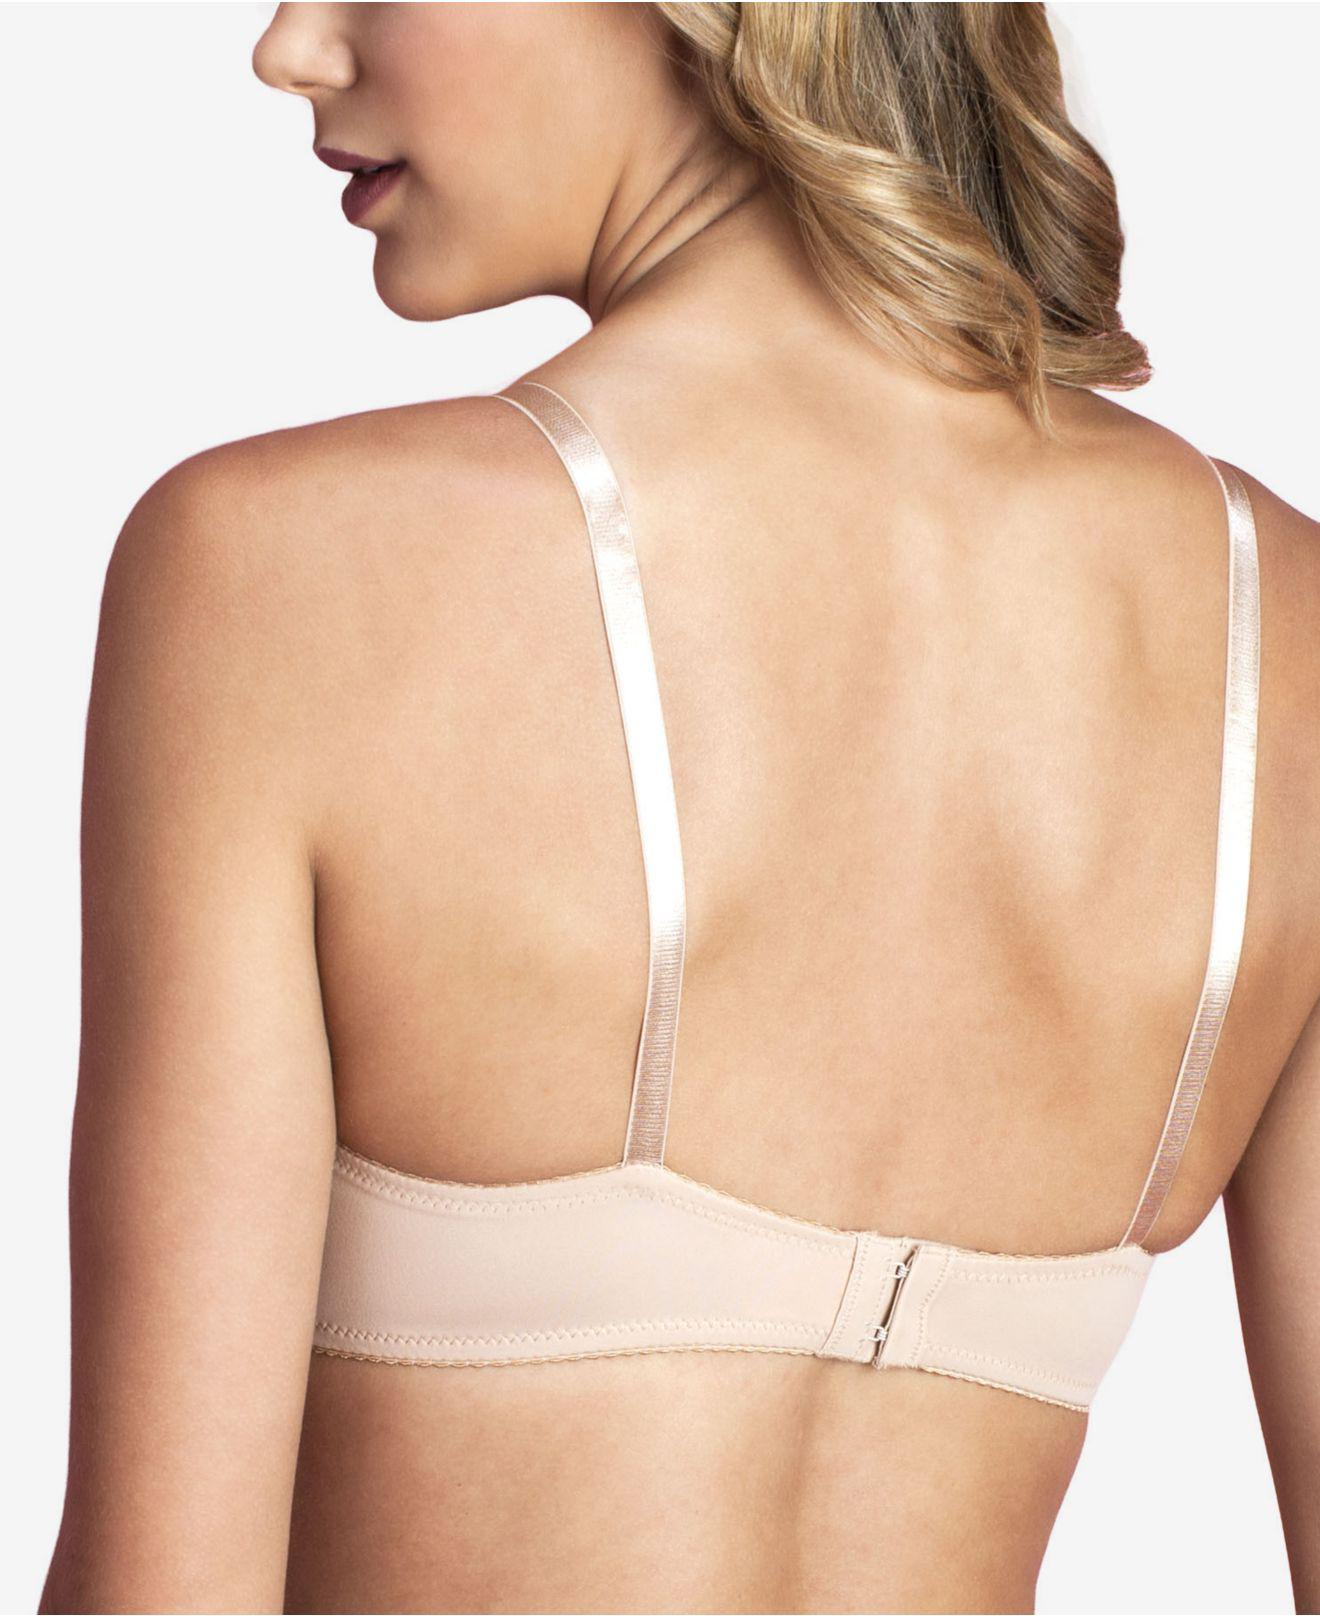 744f31d692 Lyst - Fashion Forms Original Smooth Water Push-up Bra® Mc690 in Natural